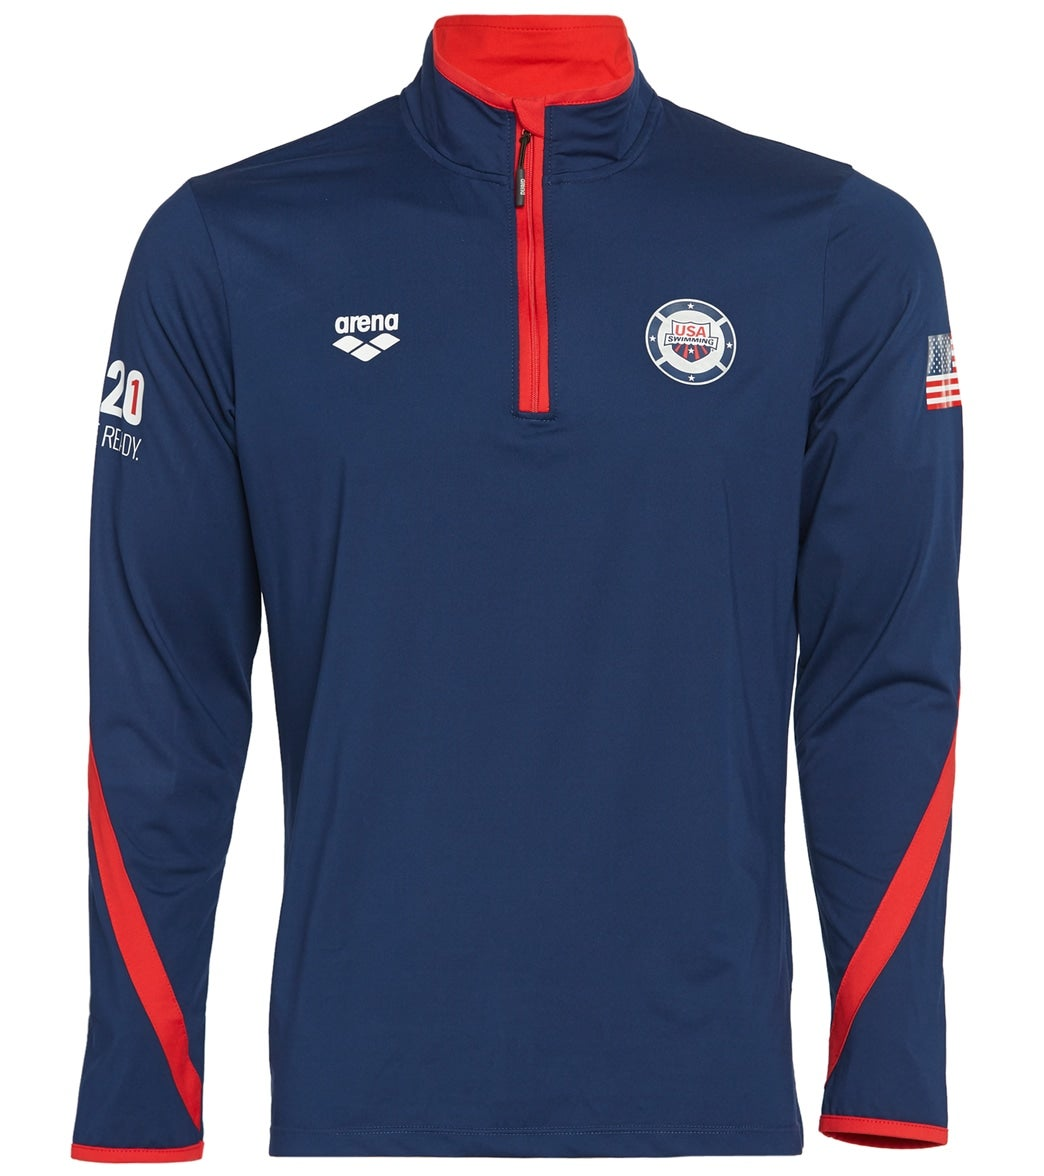 Stay comfortable and show your USA pride with the arena USA Swimming Unisex 2021 We'll Be Ready National Team Tech ½ zip.  This officially licensed USA Swimming tech long-sleeve shirt features a contrast zip and sleeve details, stand-up collar, and exclusive USA National Team mark on left chest. Available in men's and women's styles.|https://www.swimoutlet.com/p/arena-usa-swimming-mens-2021-well-be-ready-national-team-tech-12-zip-long-sleeve-shirt-ii-8197348/?color=9606|0|stt7